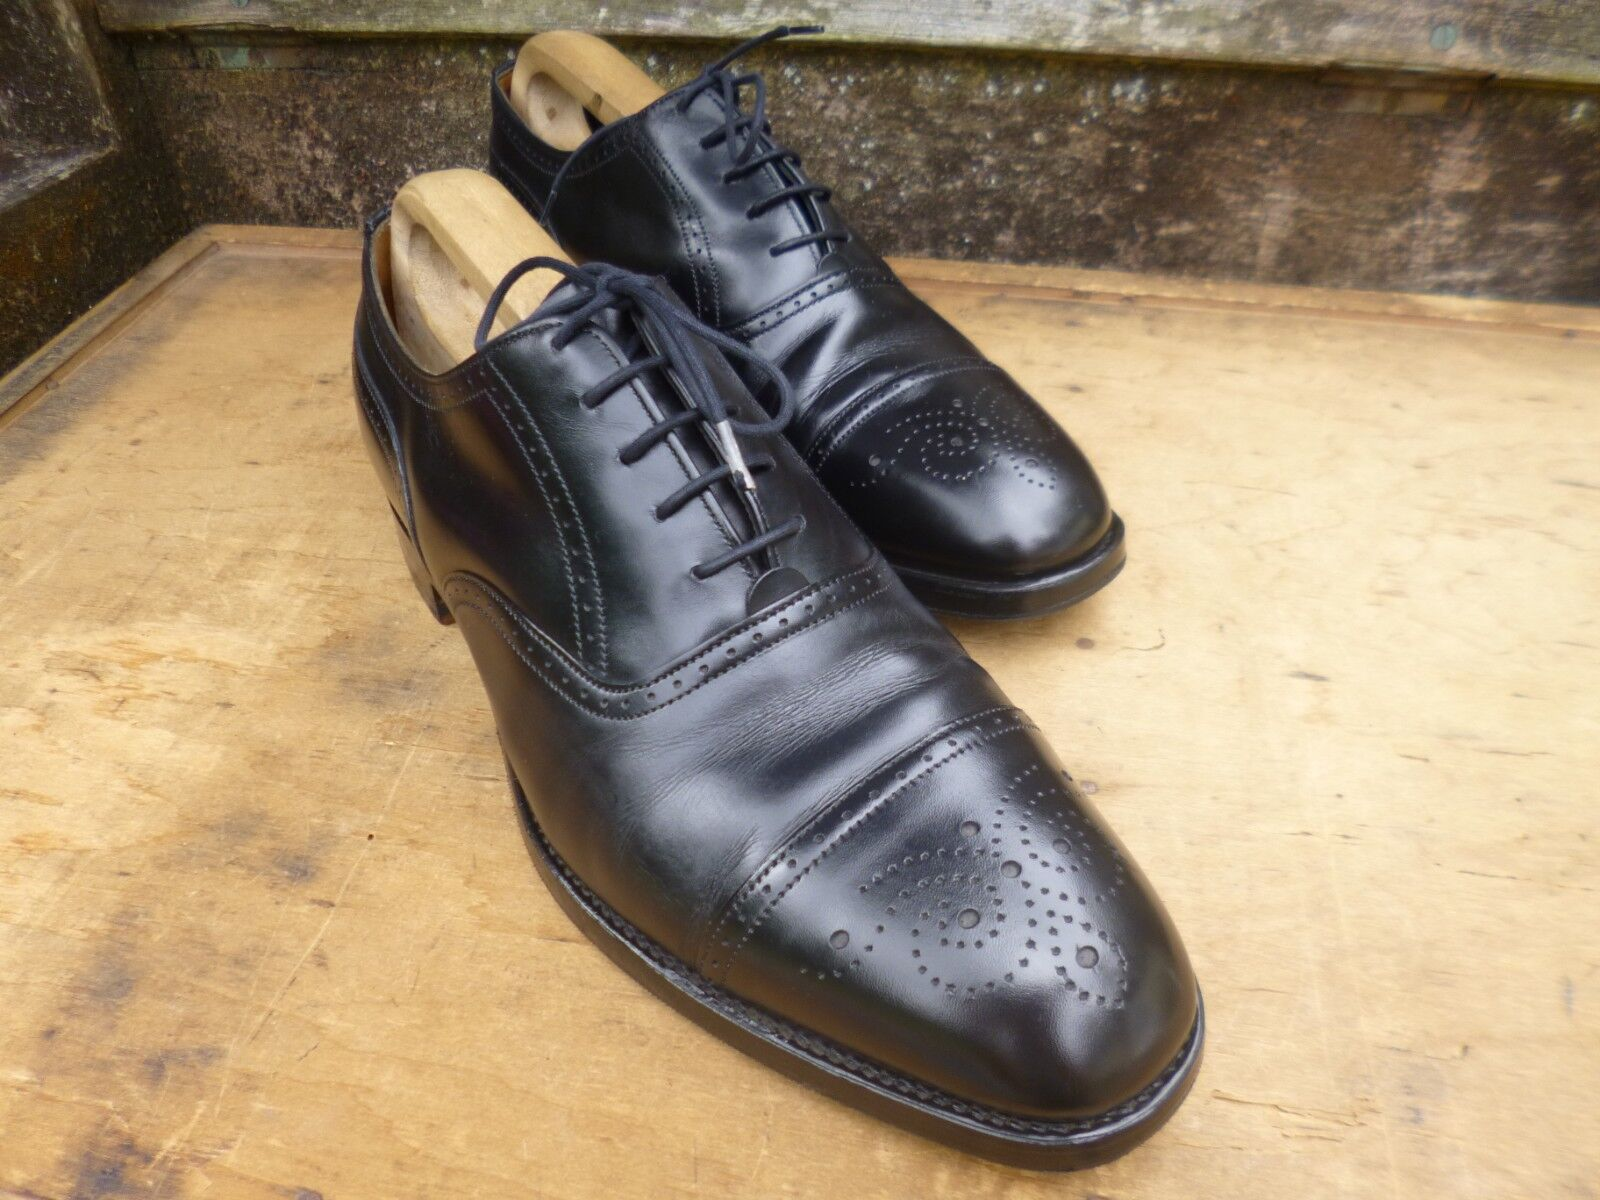 CHEANEY BROGUES - BLACK - UK 8.5 – CADOGAN - EXCELLENT CONDITION